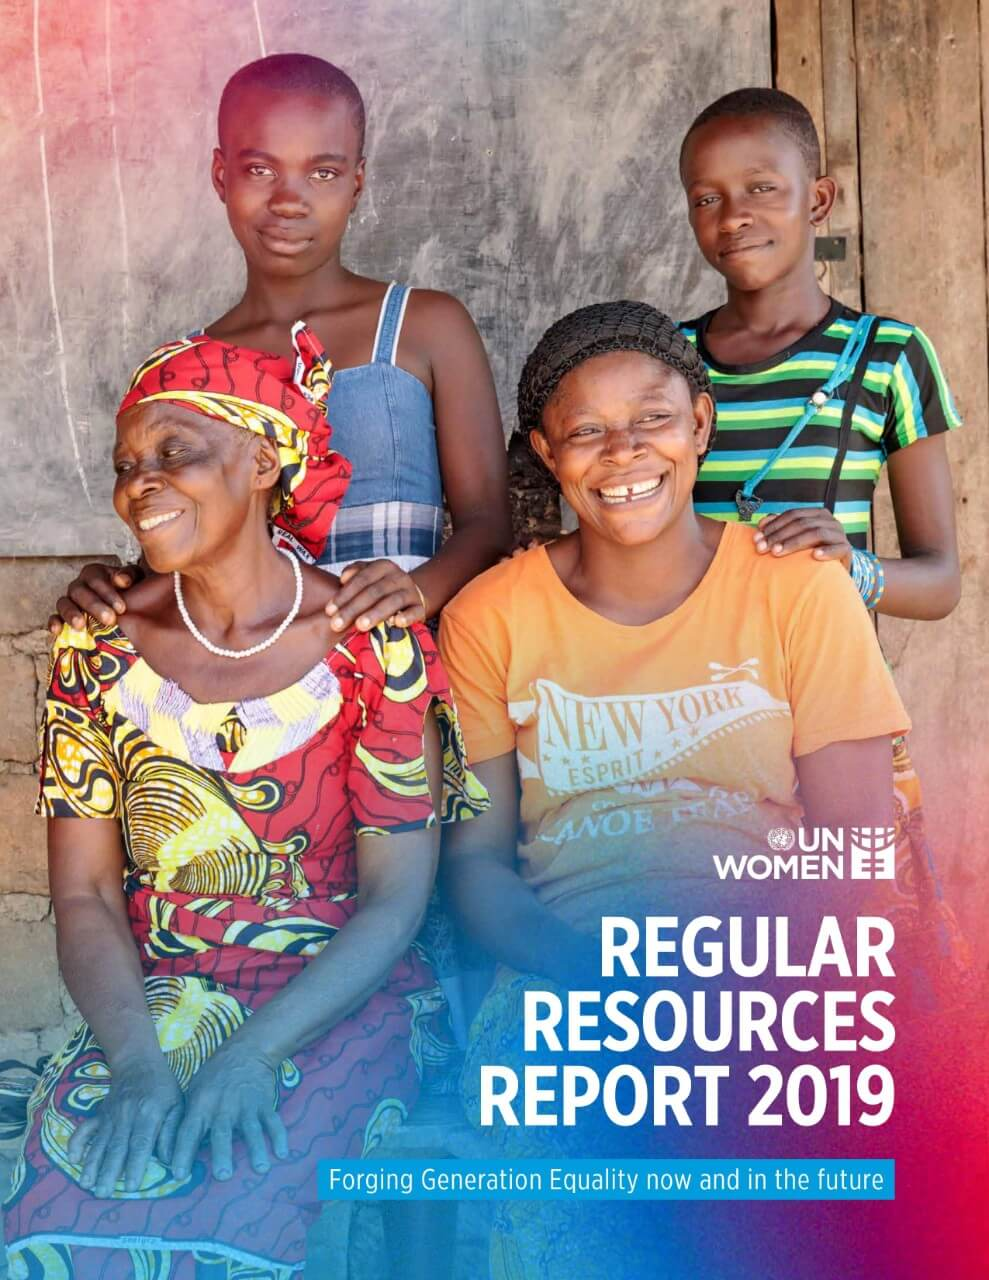 Regular resources report 2019: Forging Generation Equality now and in the future